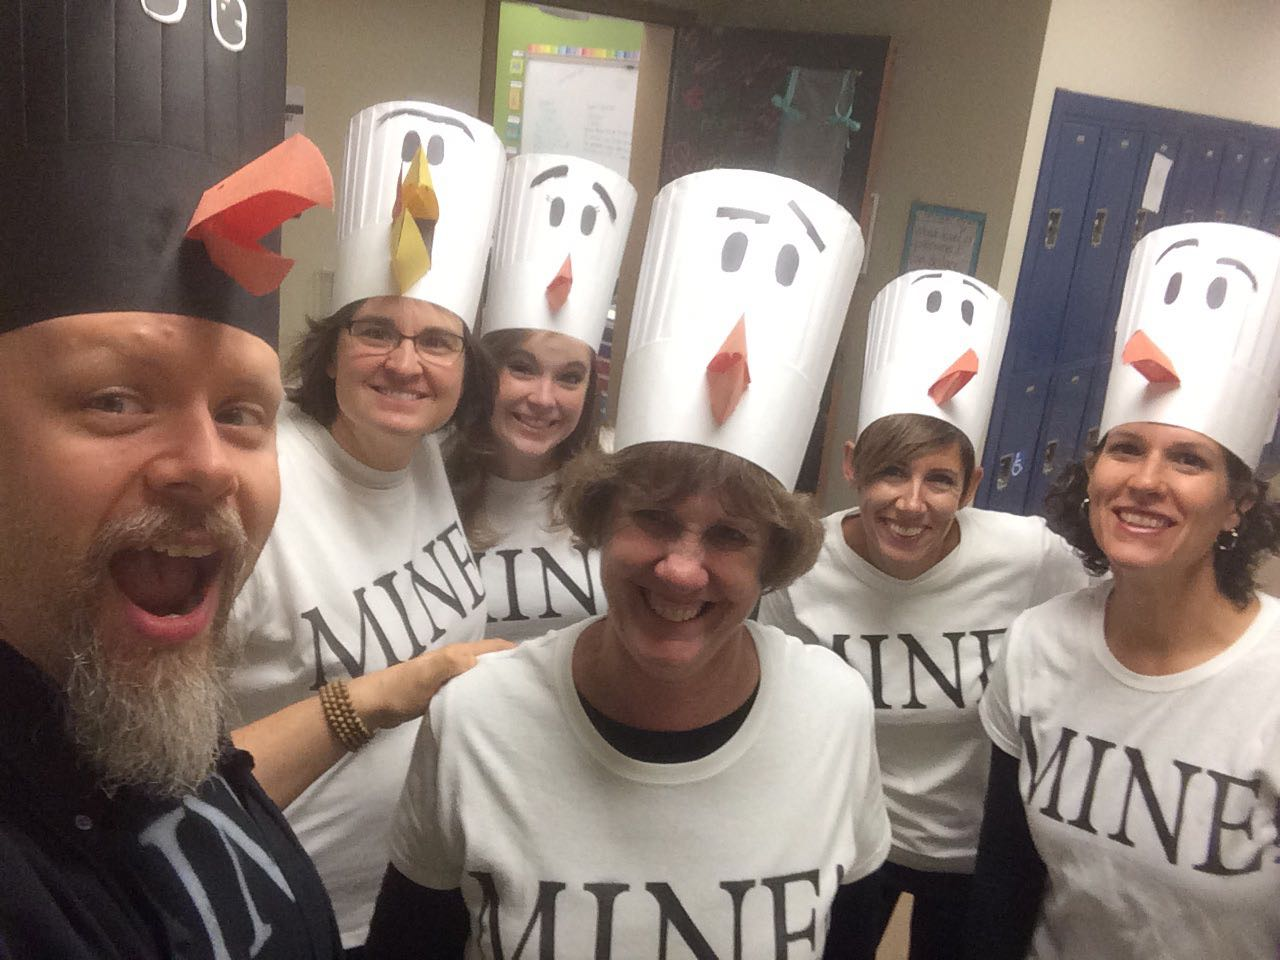 Middle school teachers dressed up for halloween as seagulls.